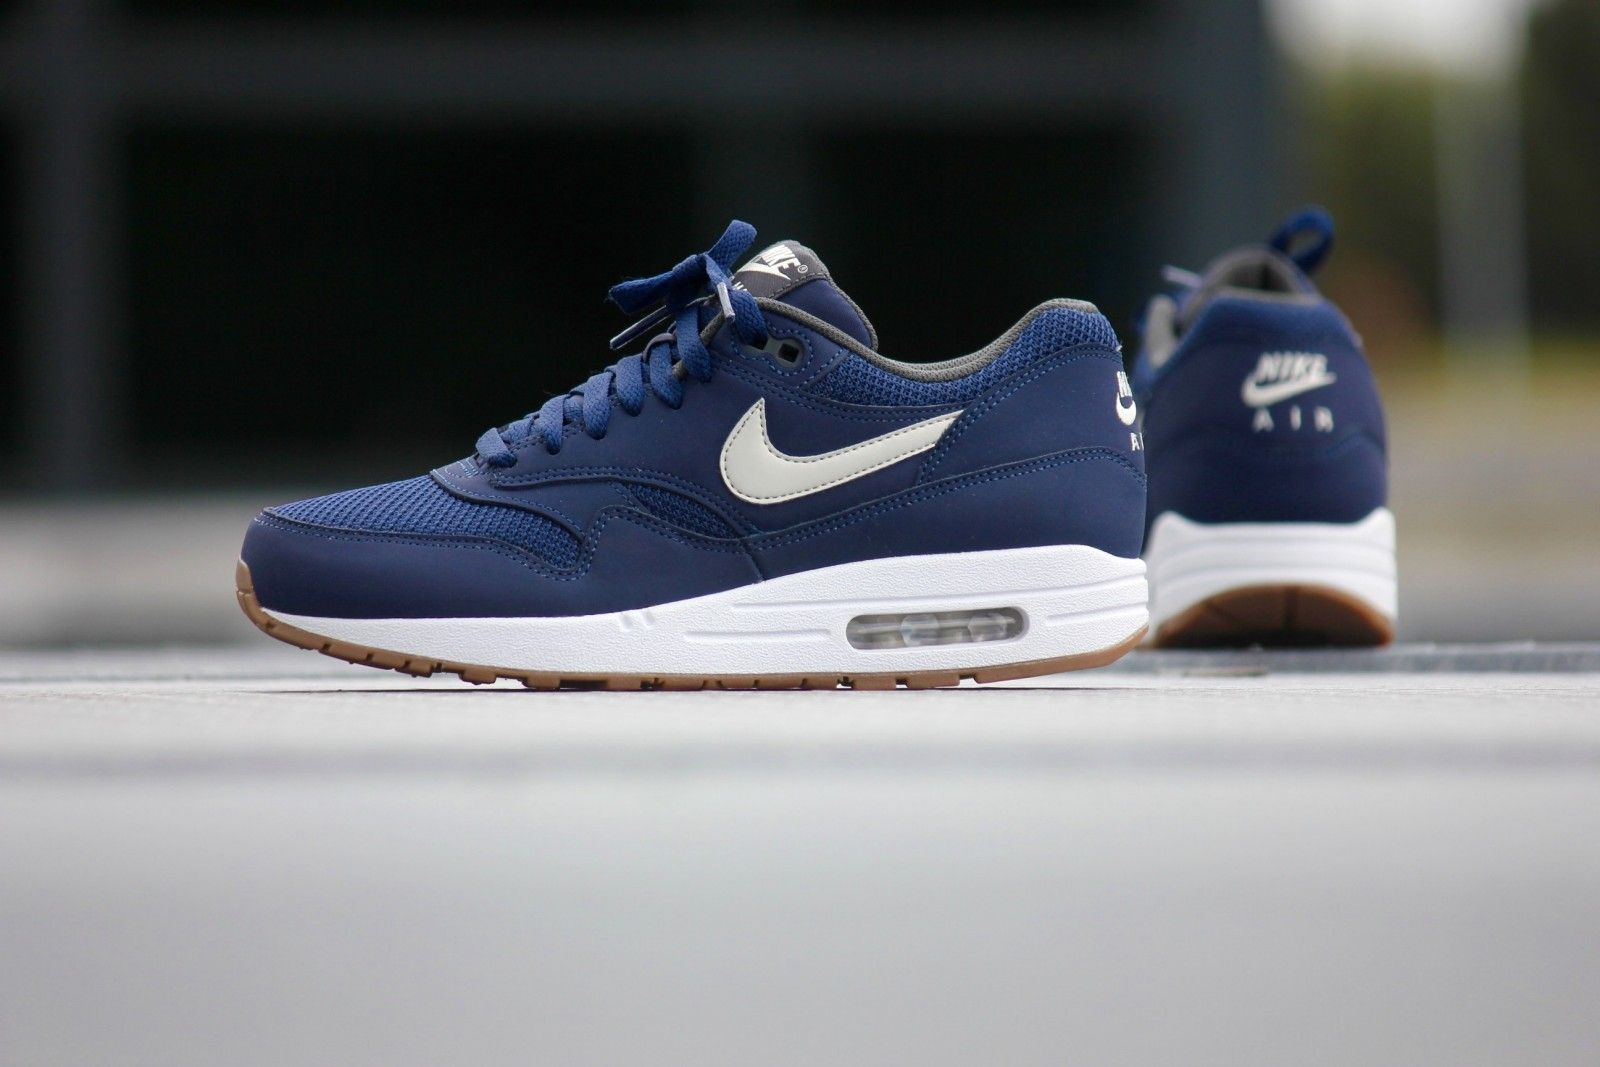 Nike Air Max 1 Essential Midnight Navy/Light Bone/Red Running Shoes for MAN